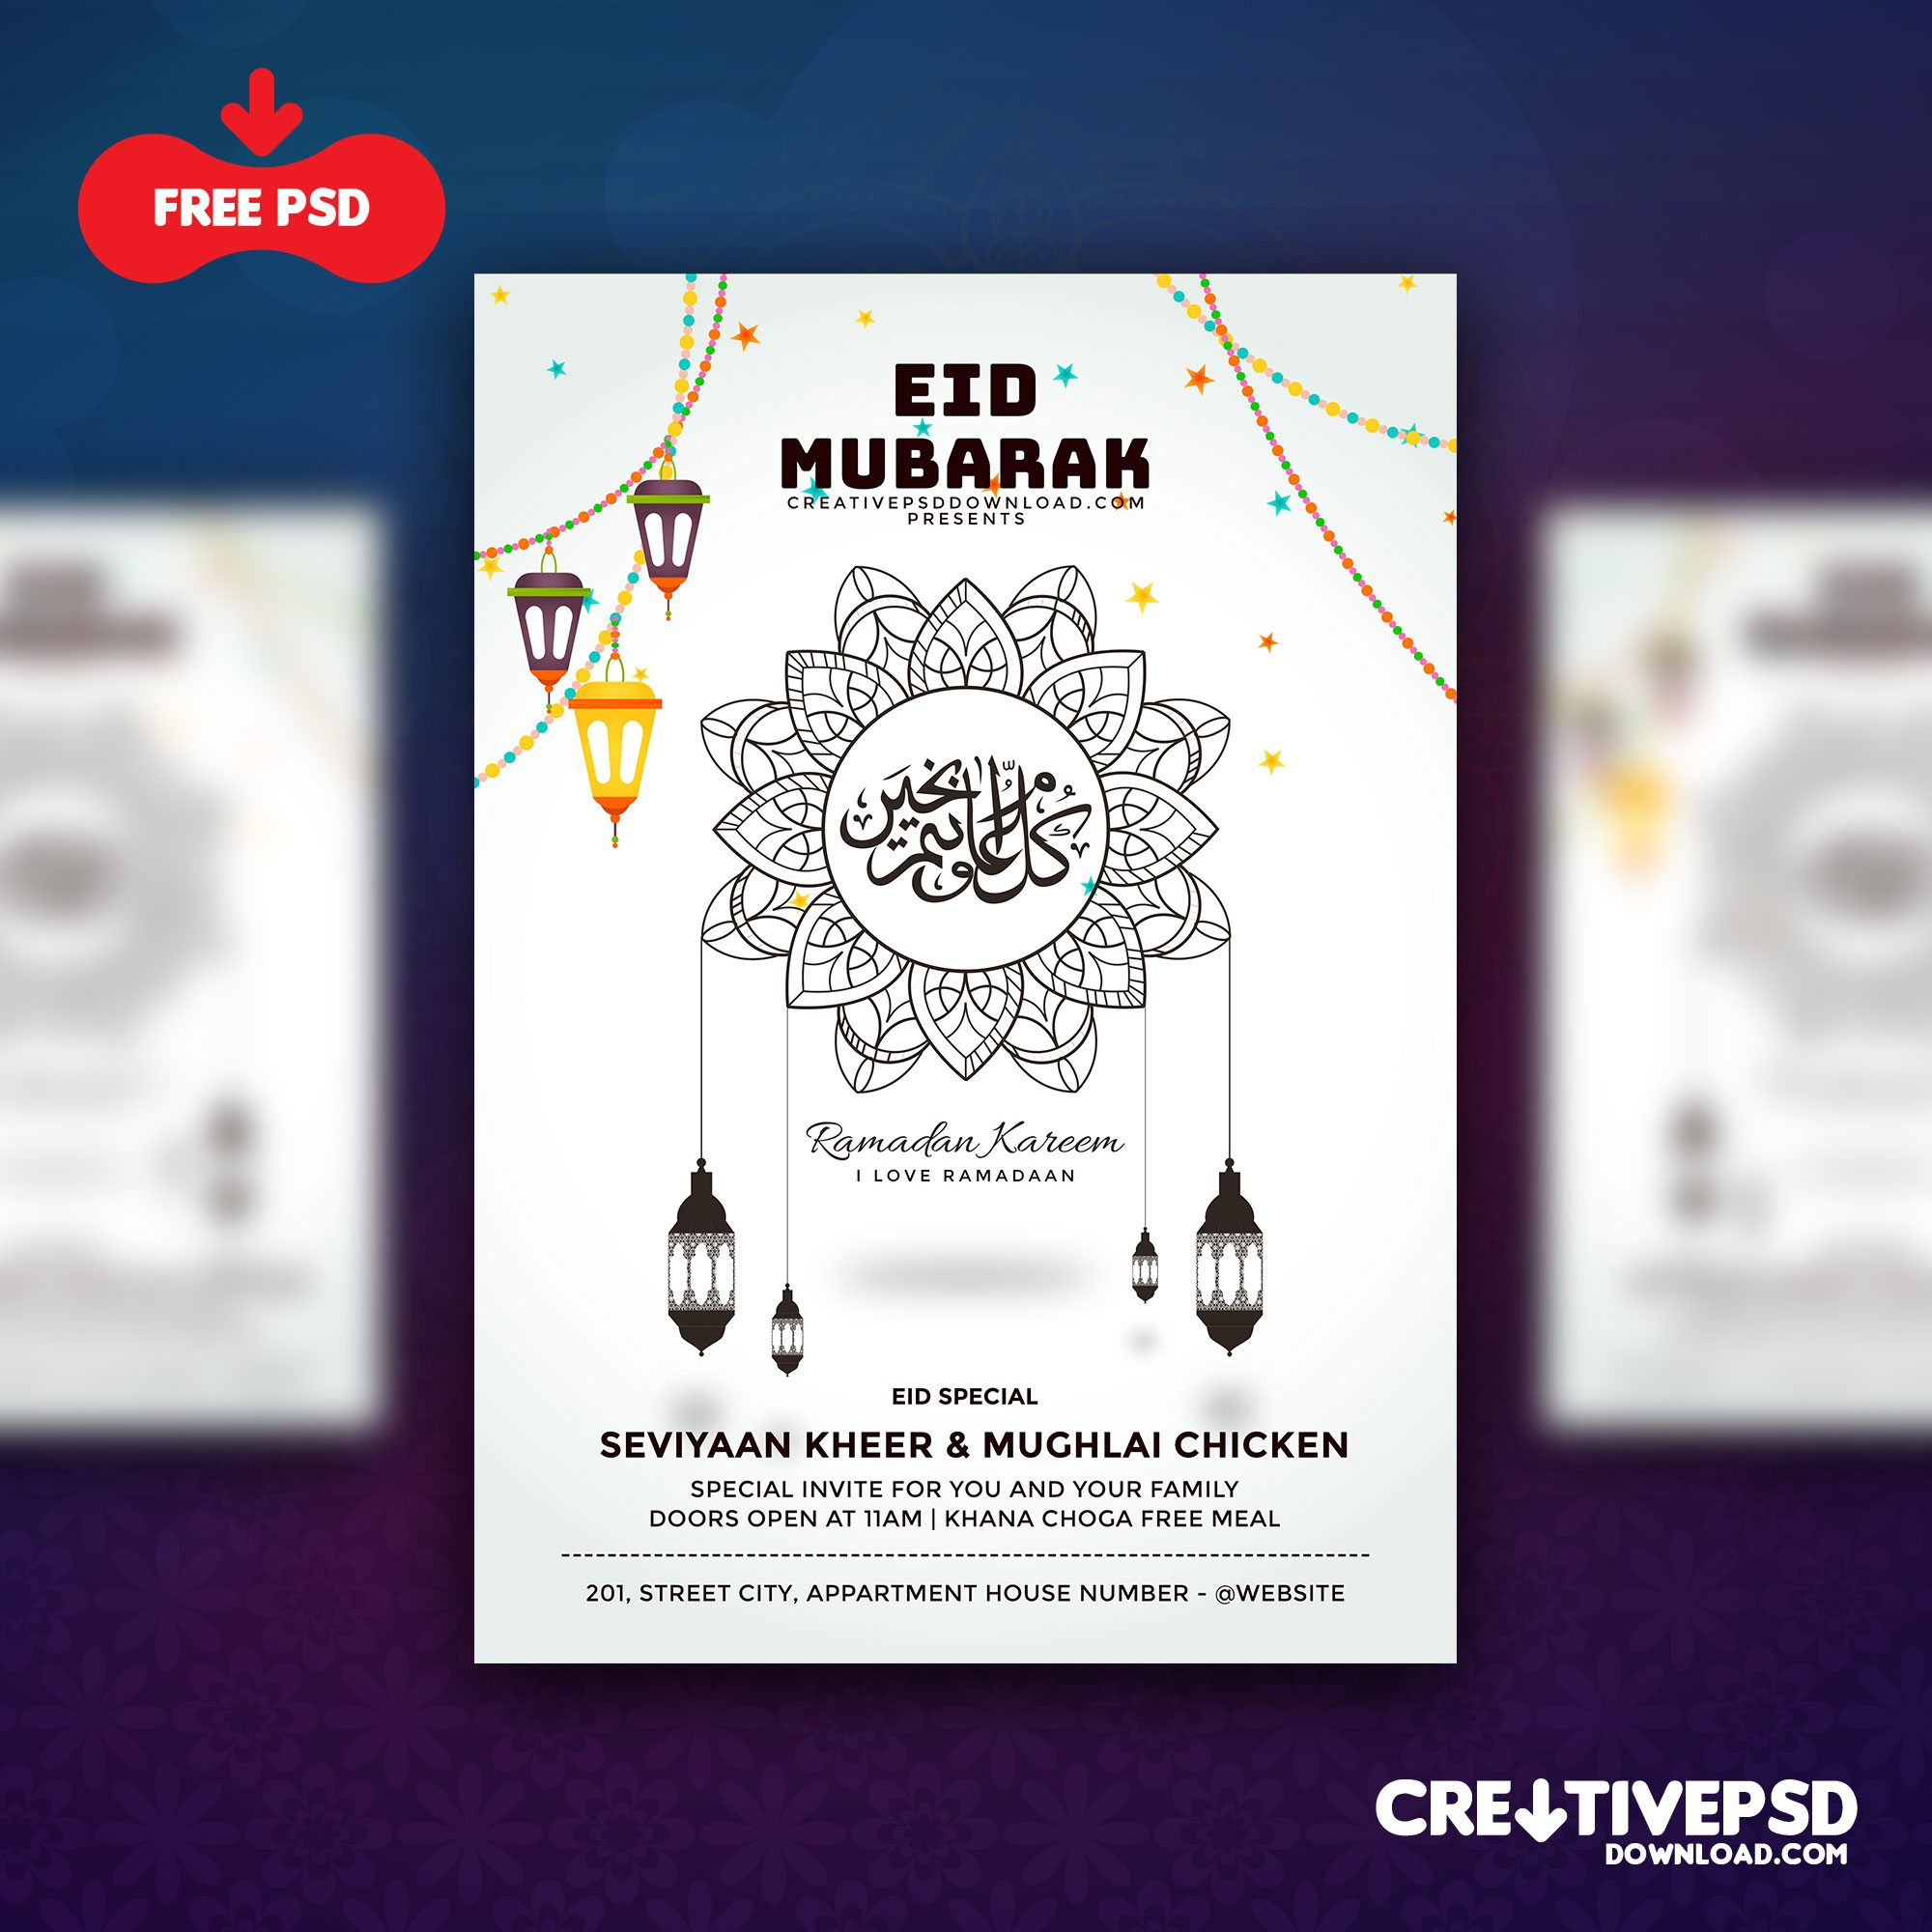 Eid Mubarak Invite Flyer Freebie Psd Thumbnail, creative,creative psd download,eid mubarak flyer template,eid mubarak invite flyer freebie psd,eid mubarak wallpaper,eid wallpaper,free eid psd,free flyer psd,free flyers psd,free psd,free psd download,freebies,psd freebies